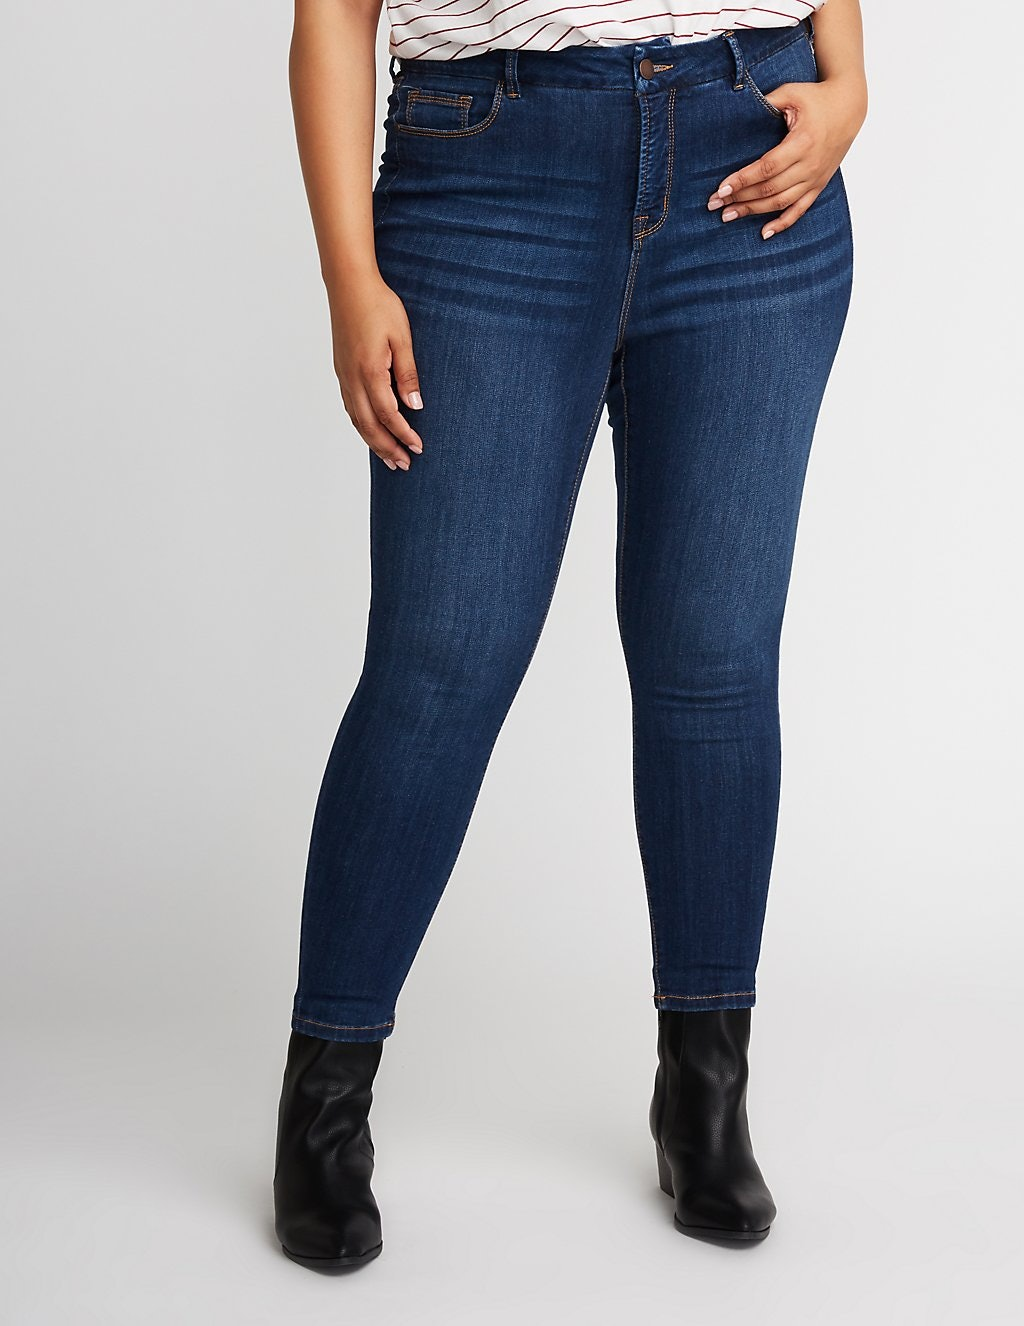 11c4d9bead32 The Best Plus-Size Jeans According To 8 Fashion Influencers